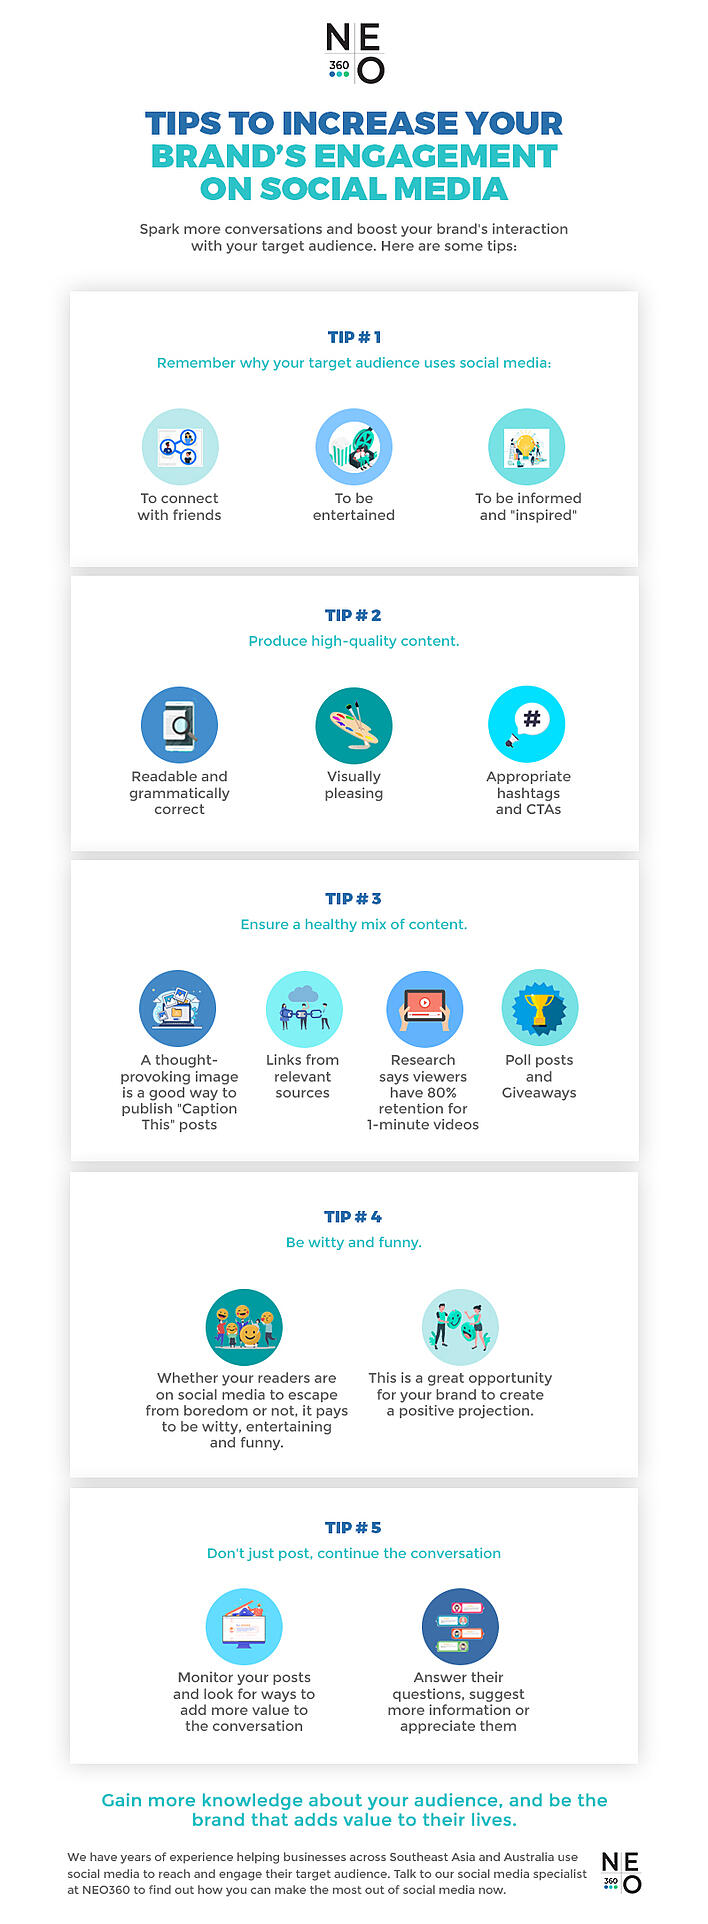 Tips-to-increase-your-brands-engagement-on-social-media-Infographic